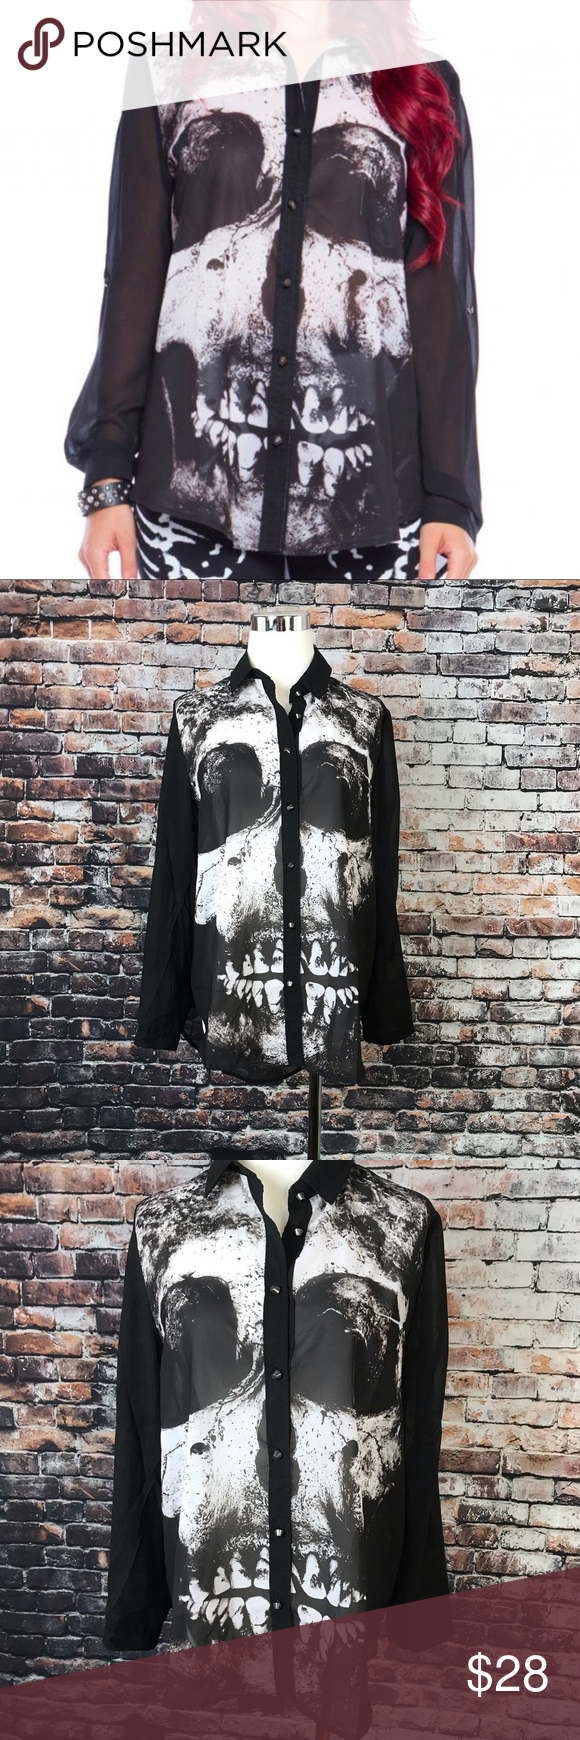 Nwt Iron Fist Loose Tooth Button Down Sheer Blouse Nwt My Posh